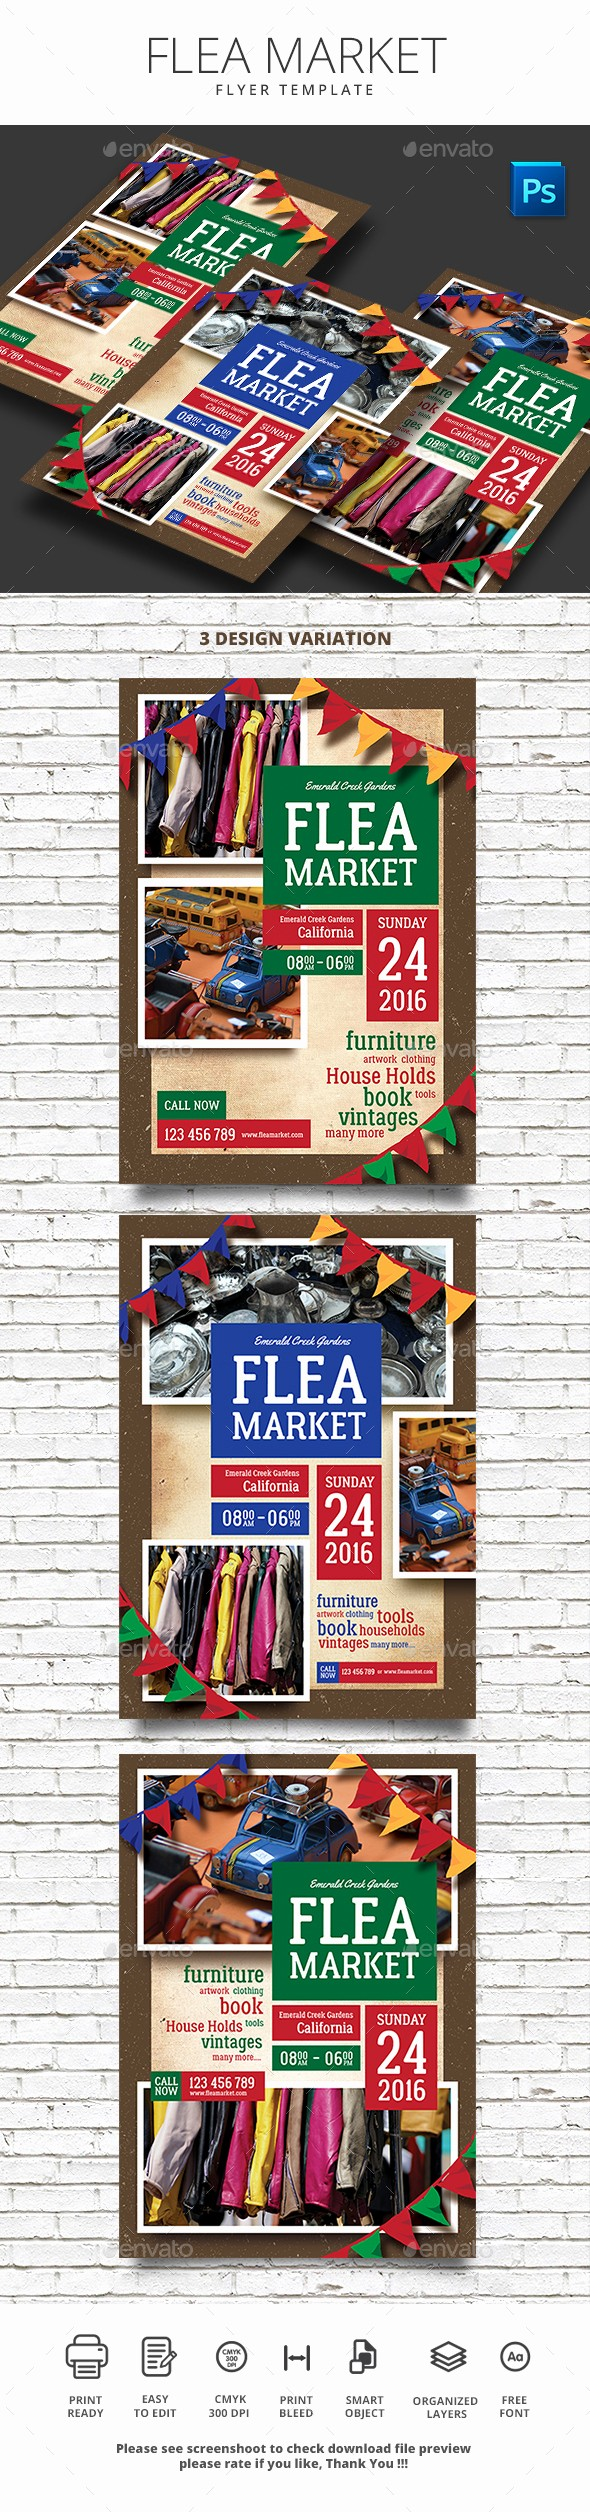 Flea Market Flyer Template Free Luxury Flea Market Flyer by Monggokerso